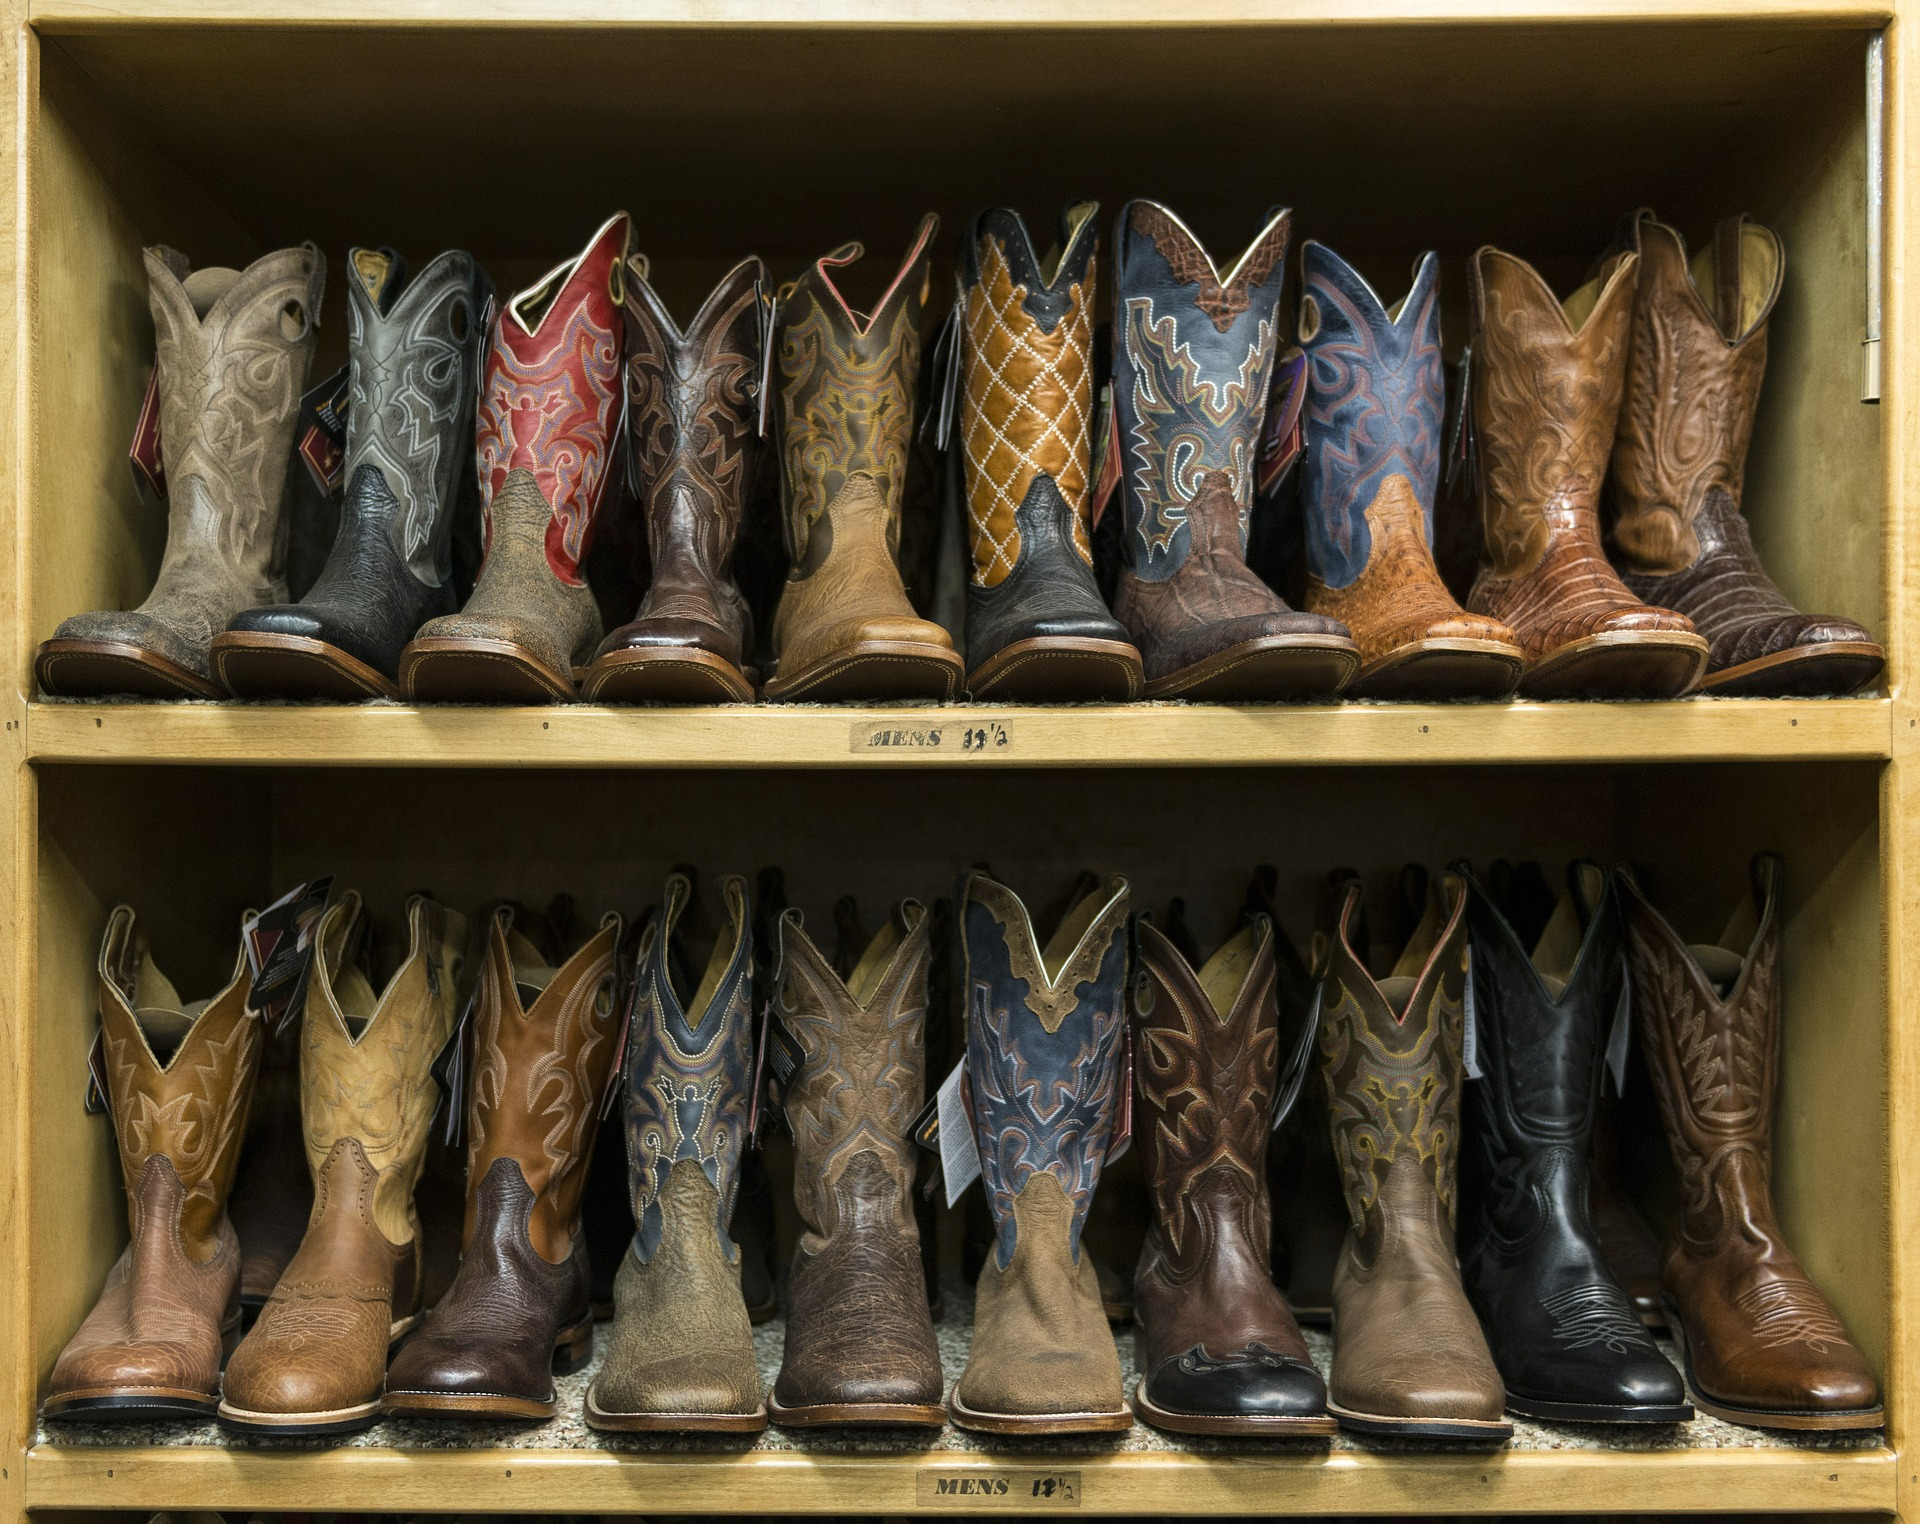 Best Place To Buy Cowboy Boots - Cr Boot